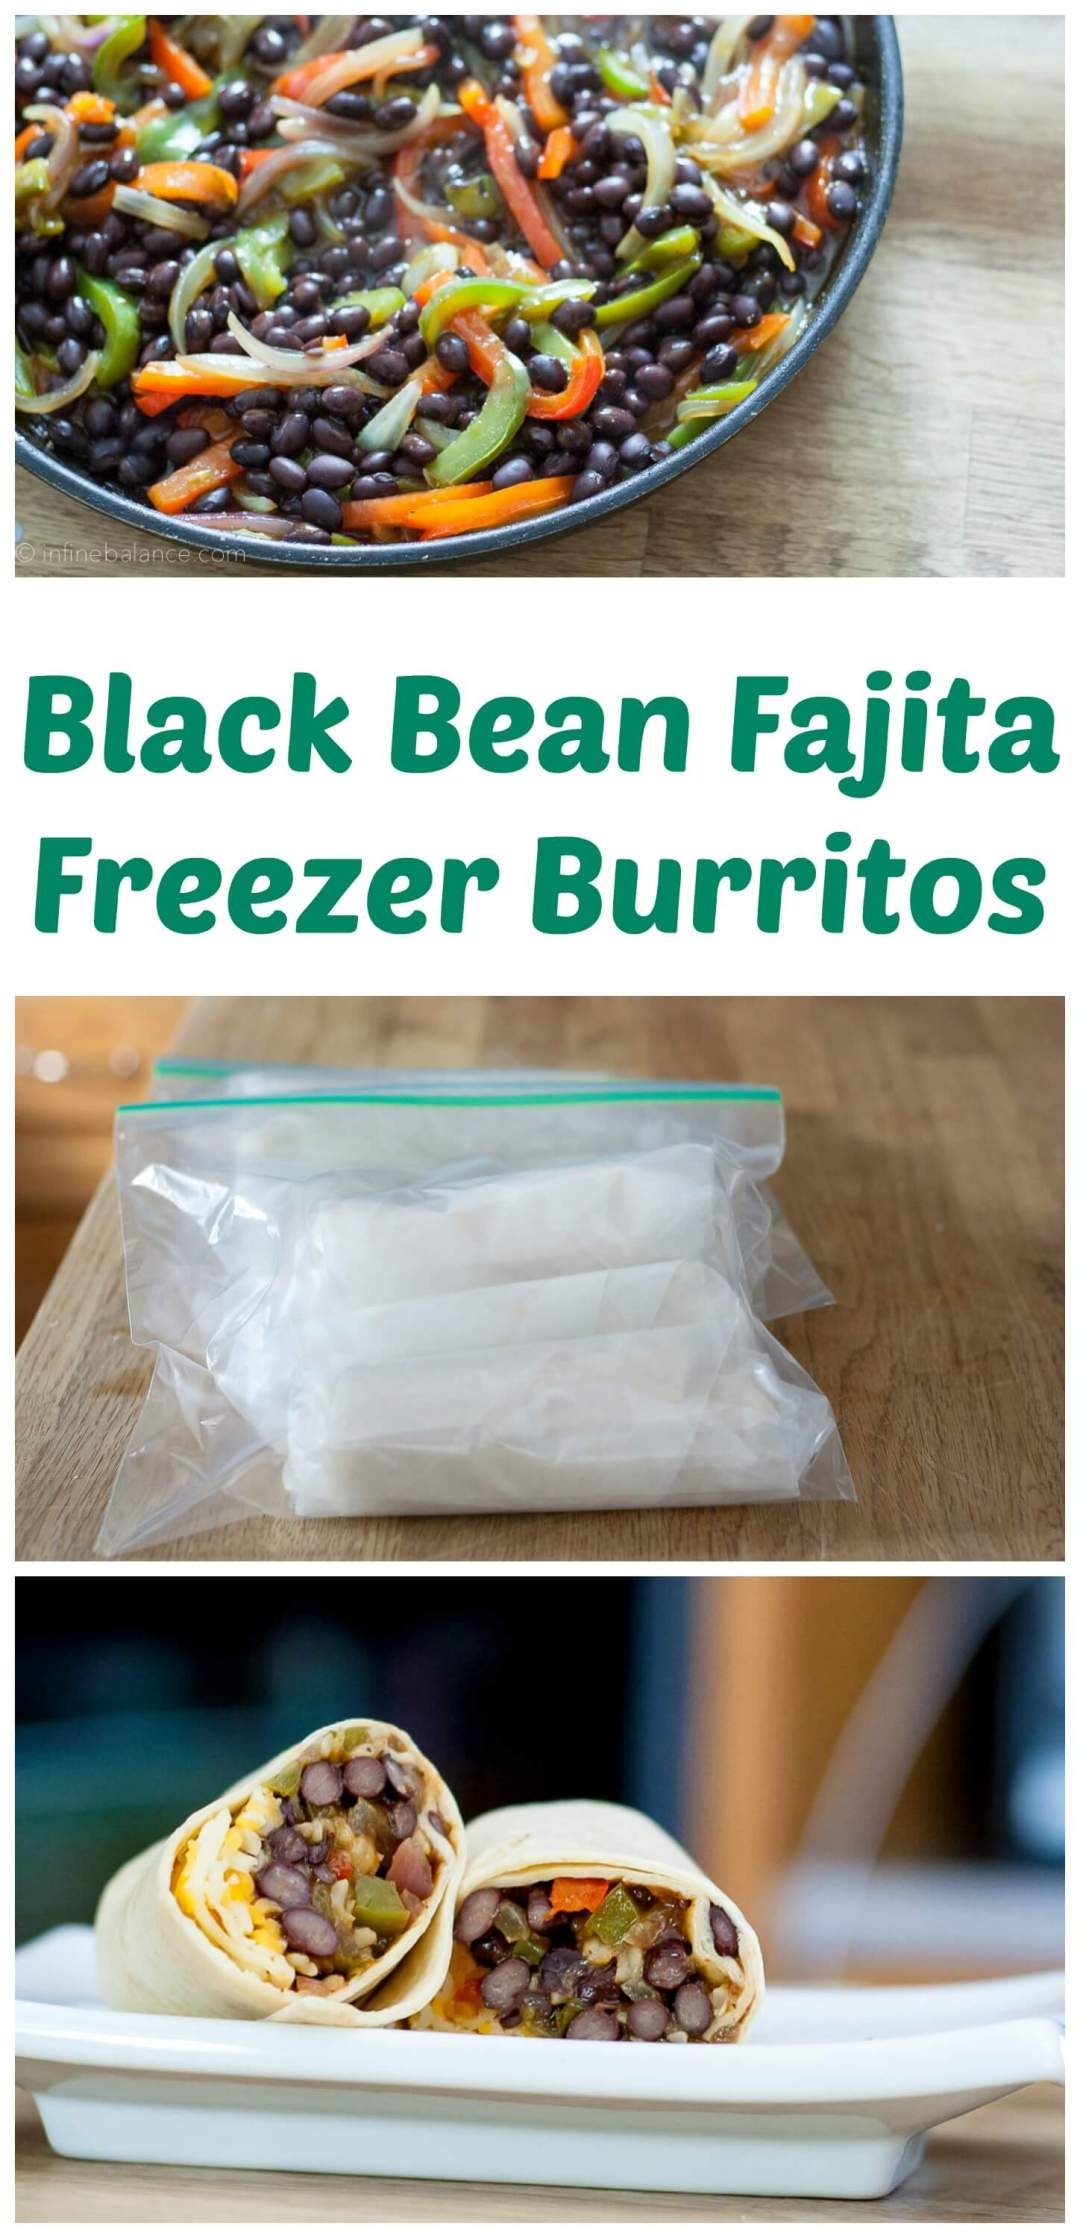 Black Bean Fajita Burritos for the Freezer | www.infinebalance.com #vegetarian #recipe